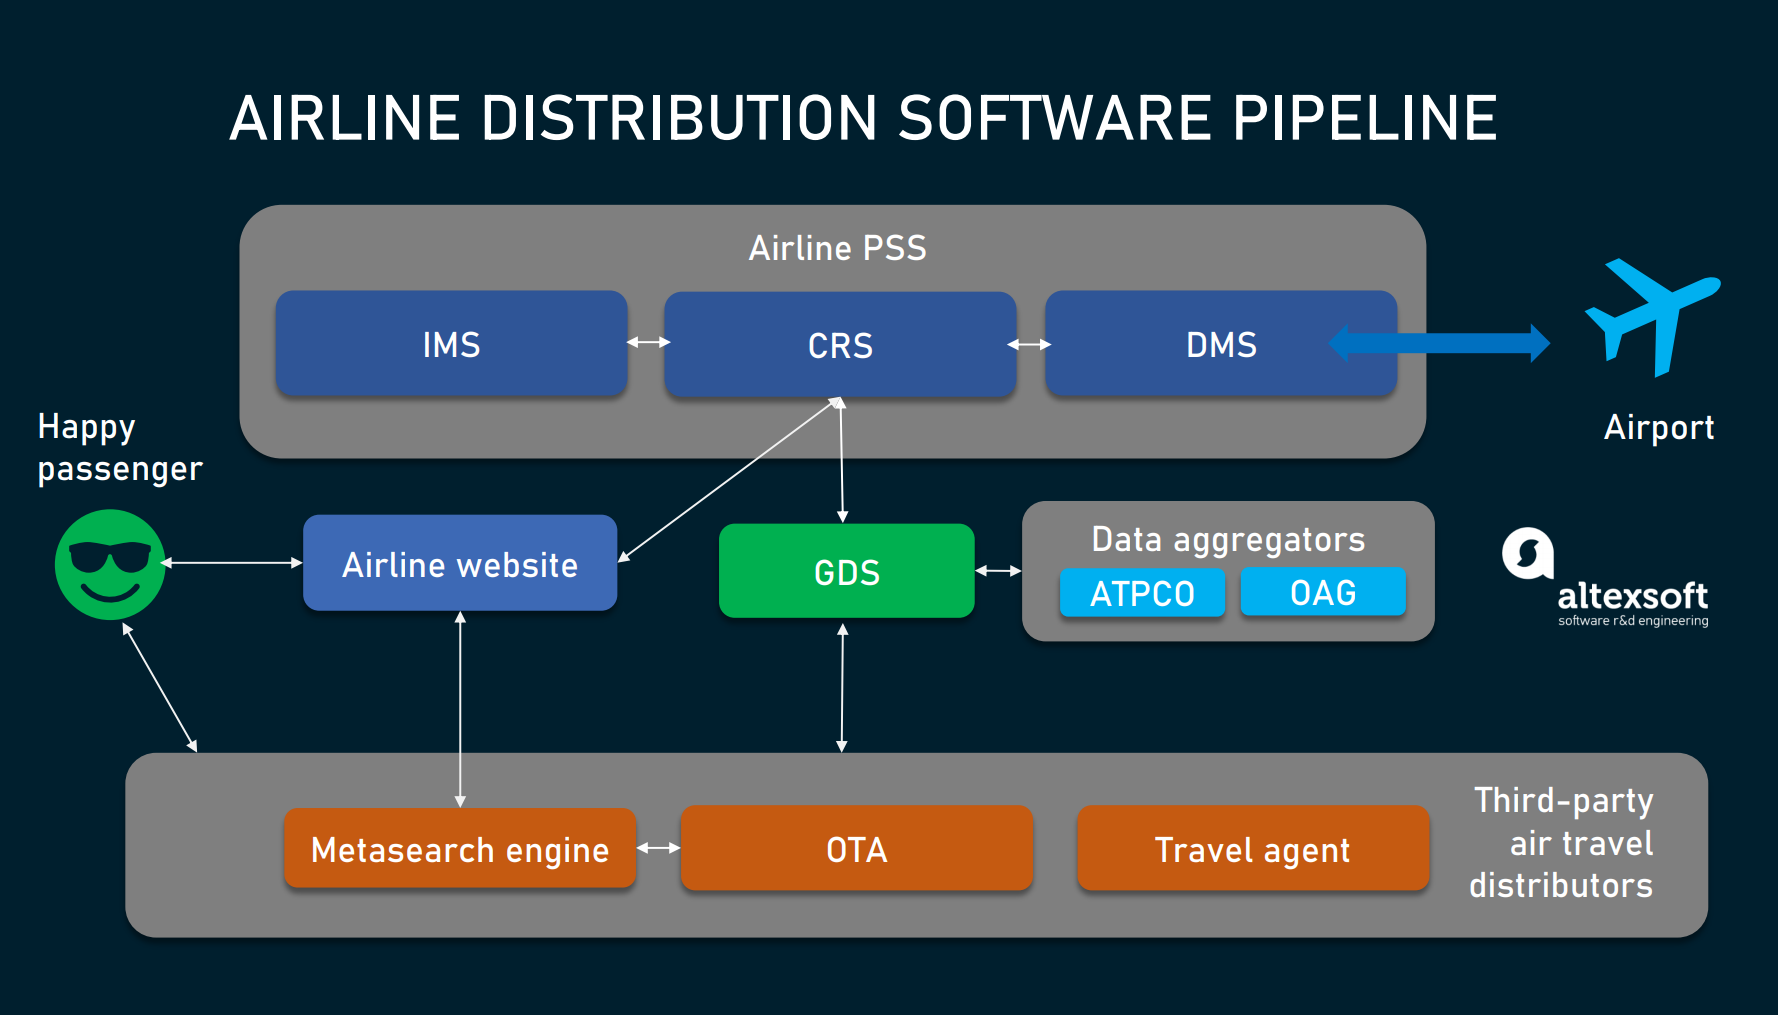 Airline distribution software pipeline